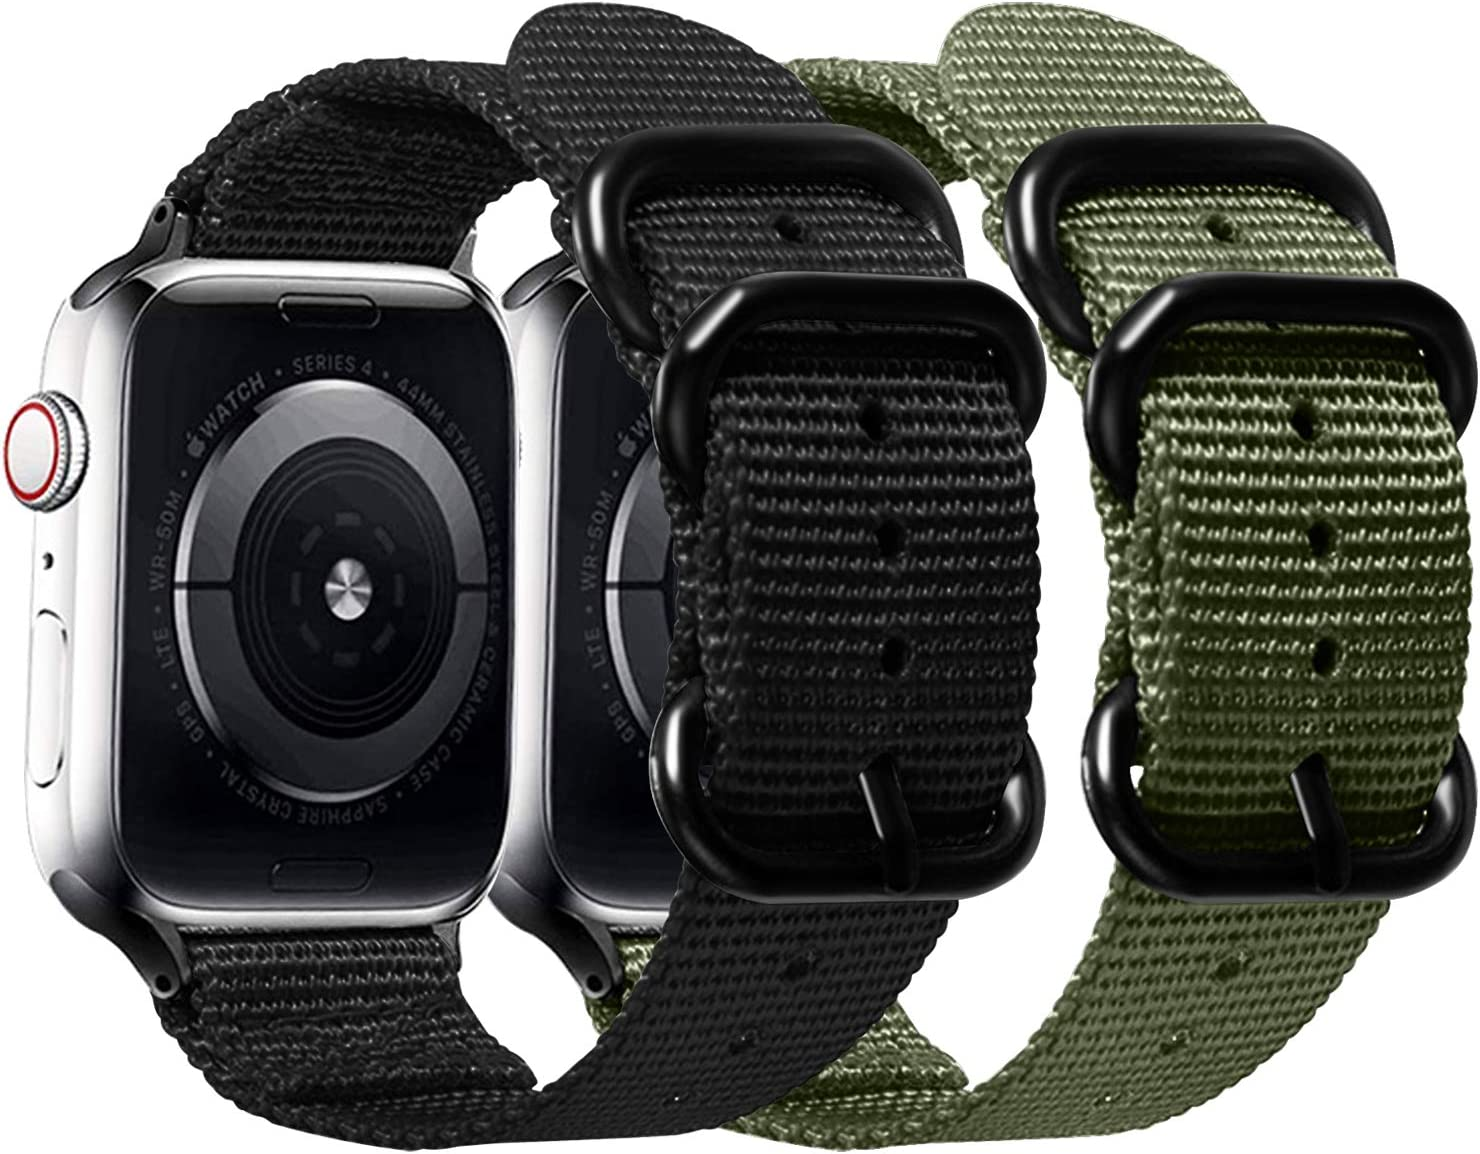 Misker Nylon Band Compatible with Apple Watch Band 44mm 42mm 40mm 38mm,Breathable Sport Strap with Metal Buckle Compatible with iwatch Series 5/4/3/2/1 (2-Packs Army Green/Black, 42mm/44mm)